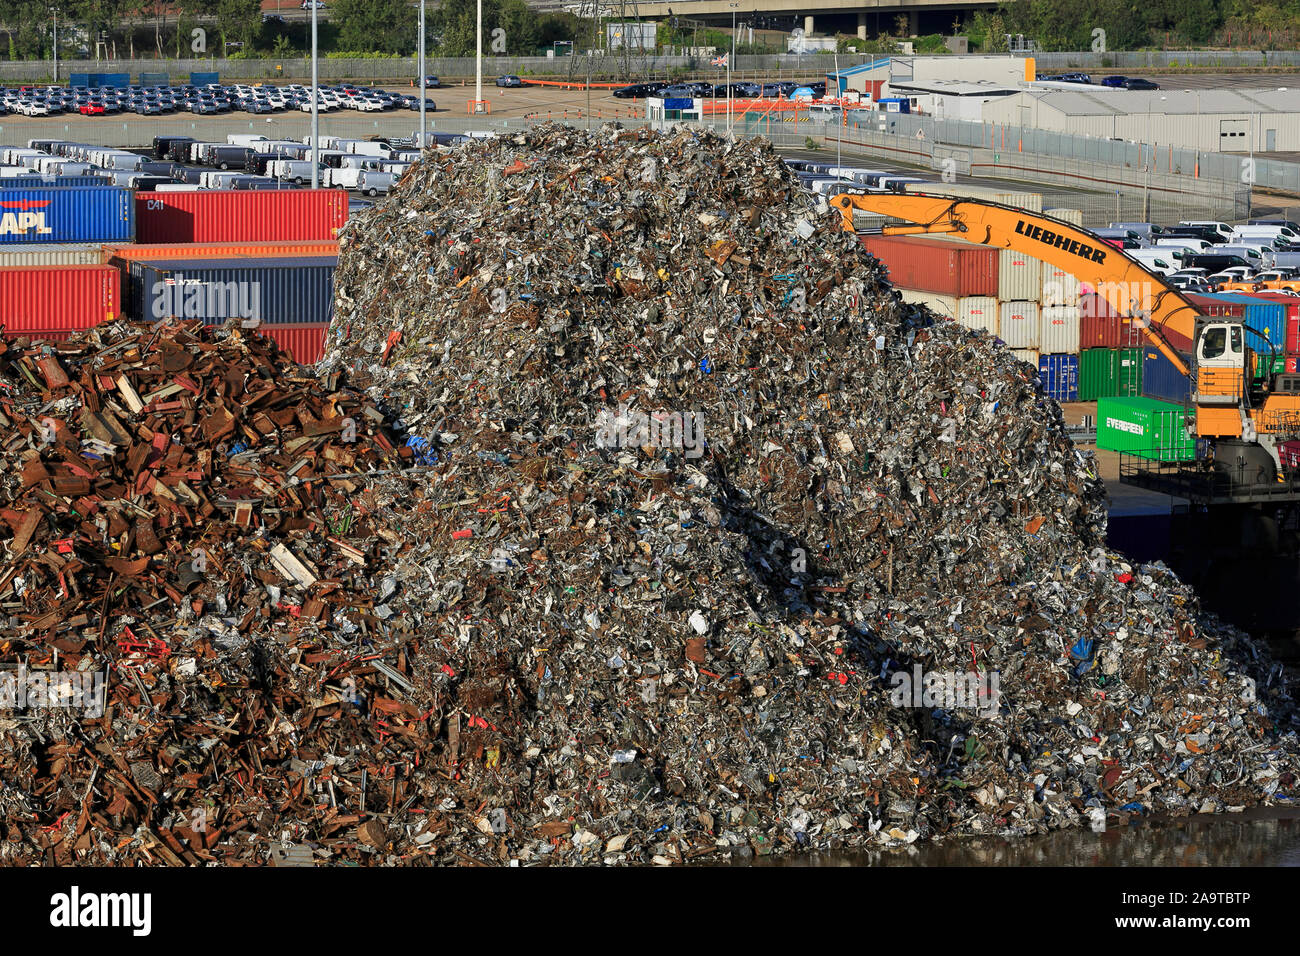 Metal recycling, Port of Southampton, Hampshire, England, United Kingdom Stock Photo